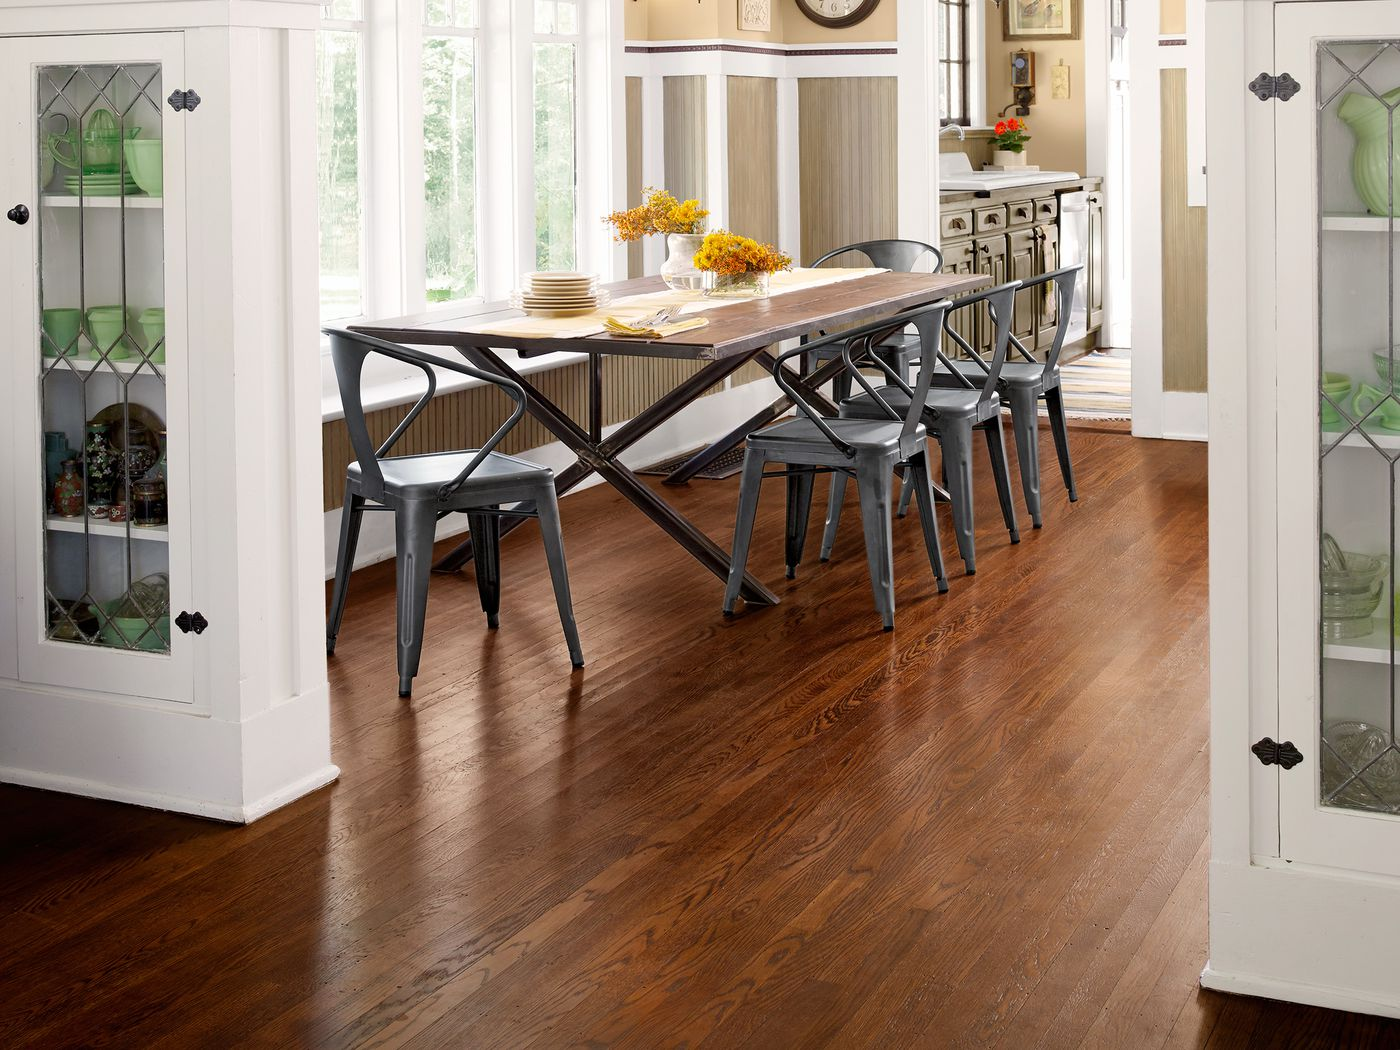 How To Clean Hardwood Floors This Old